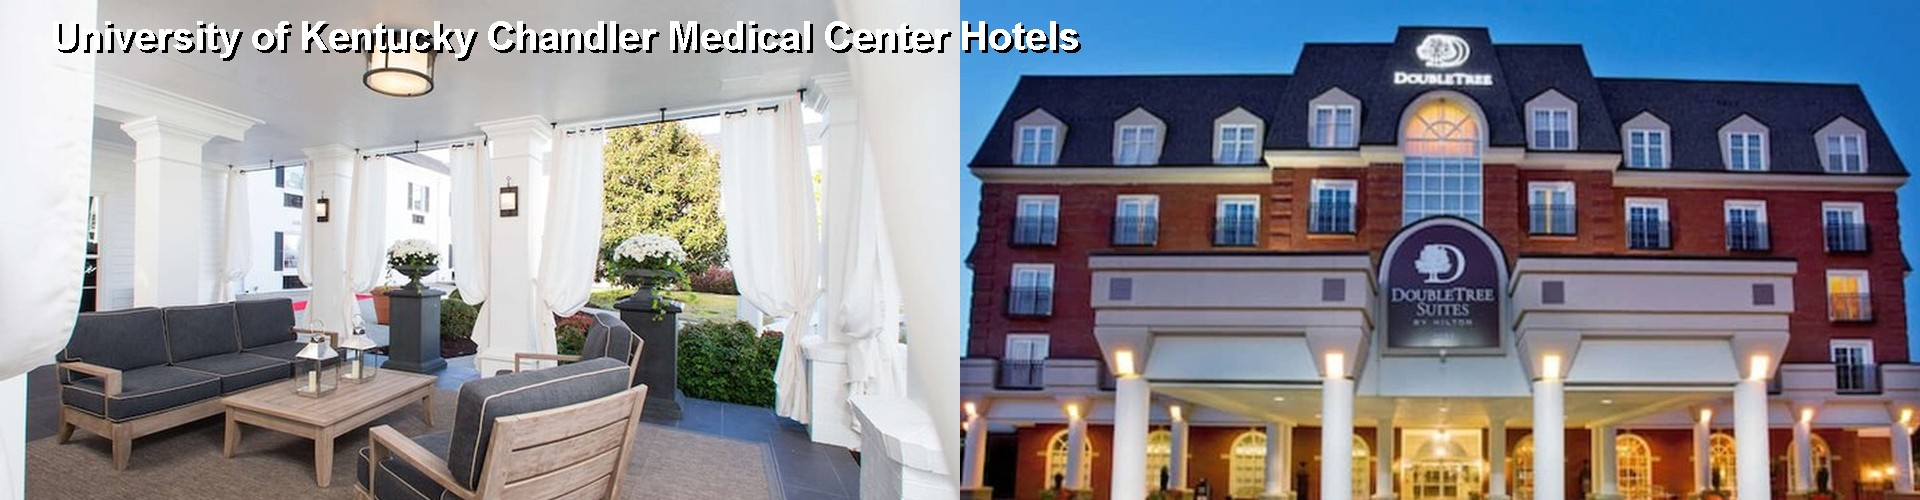 hotels near university of kentucky chandler medical center in